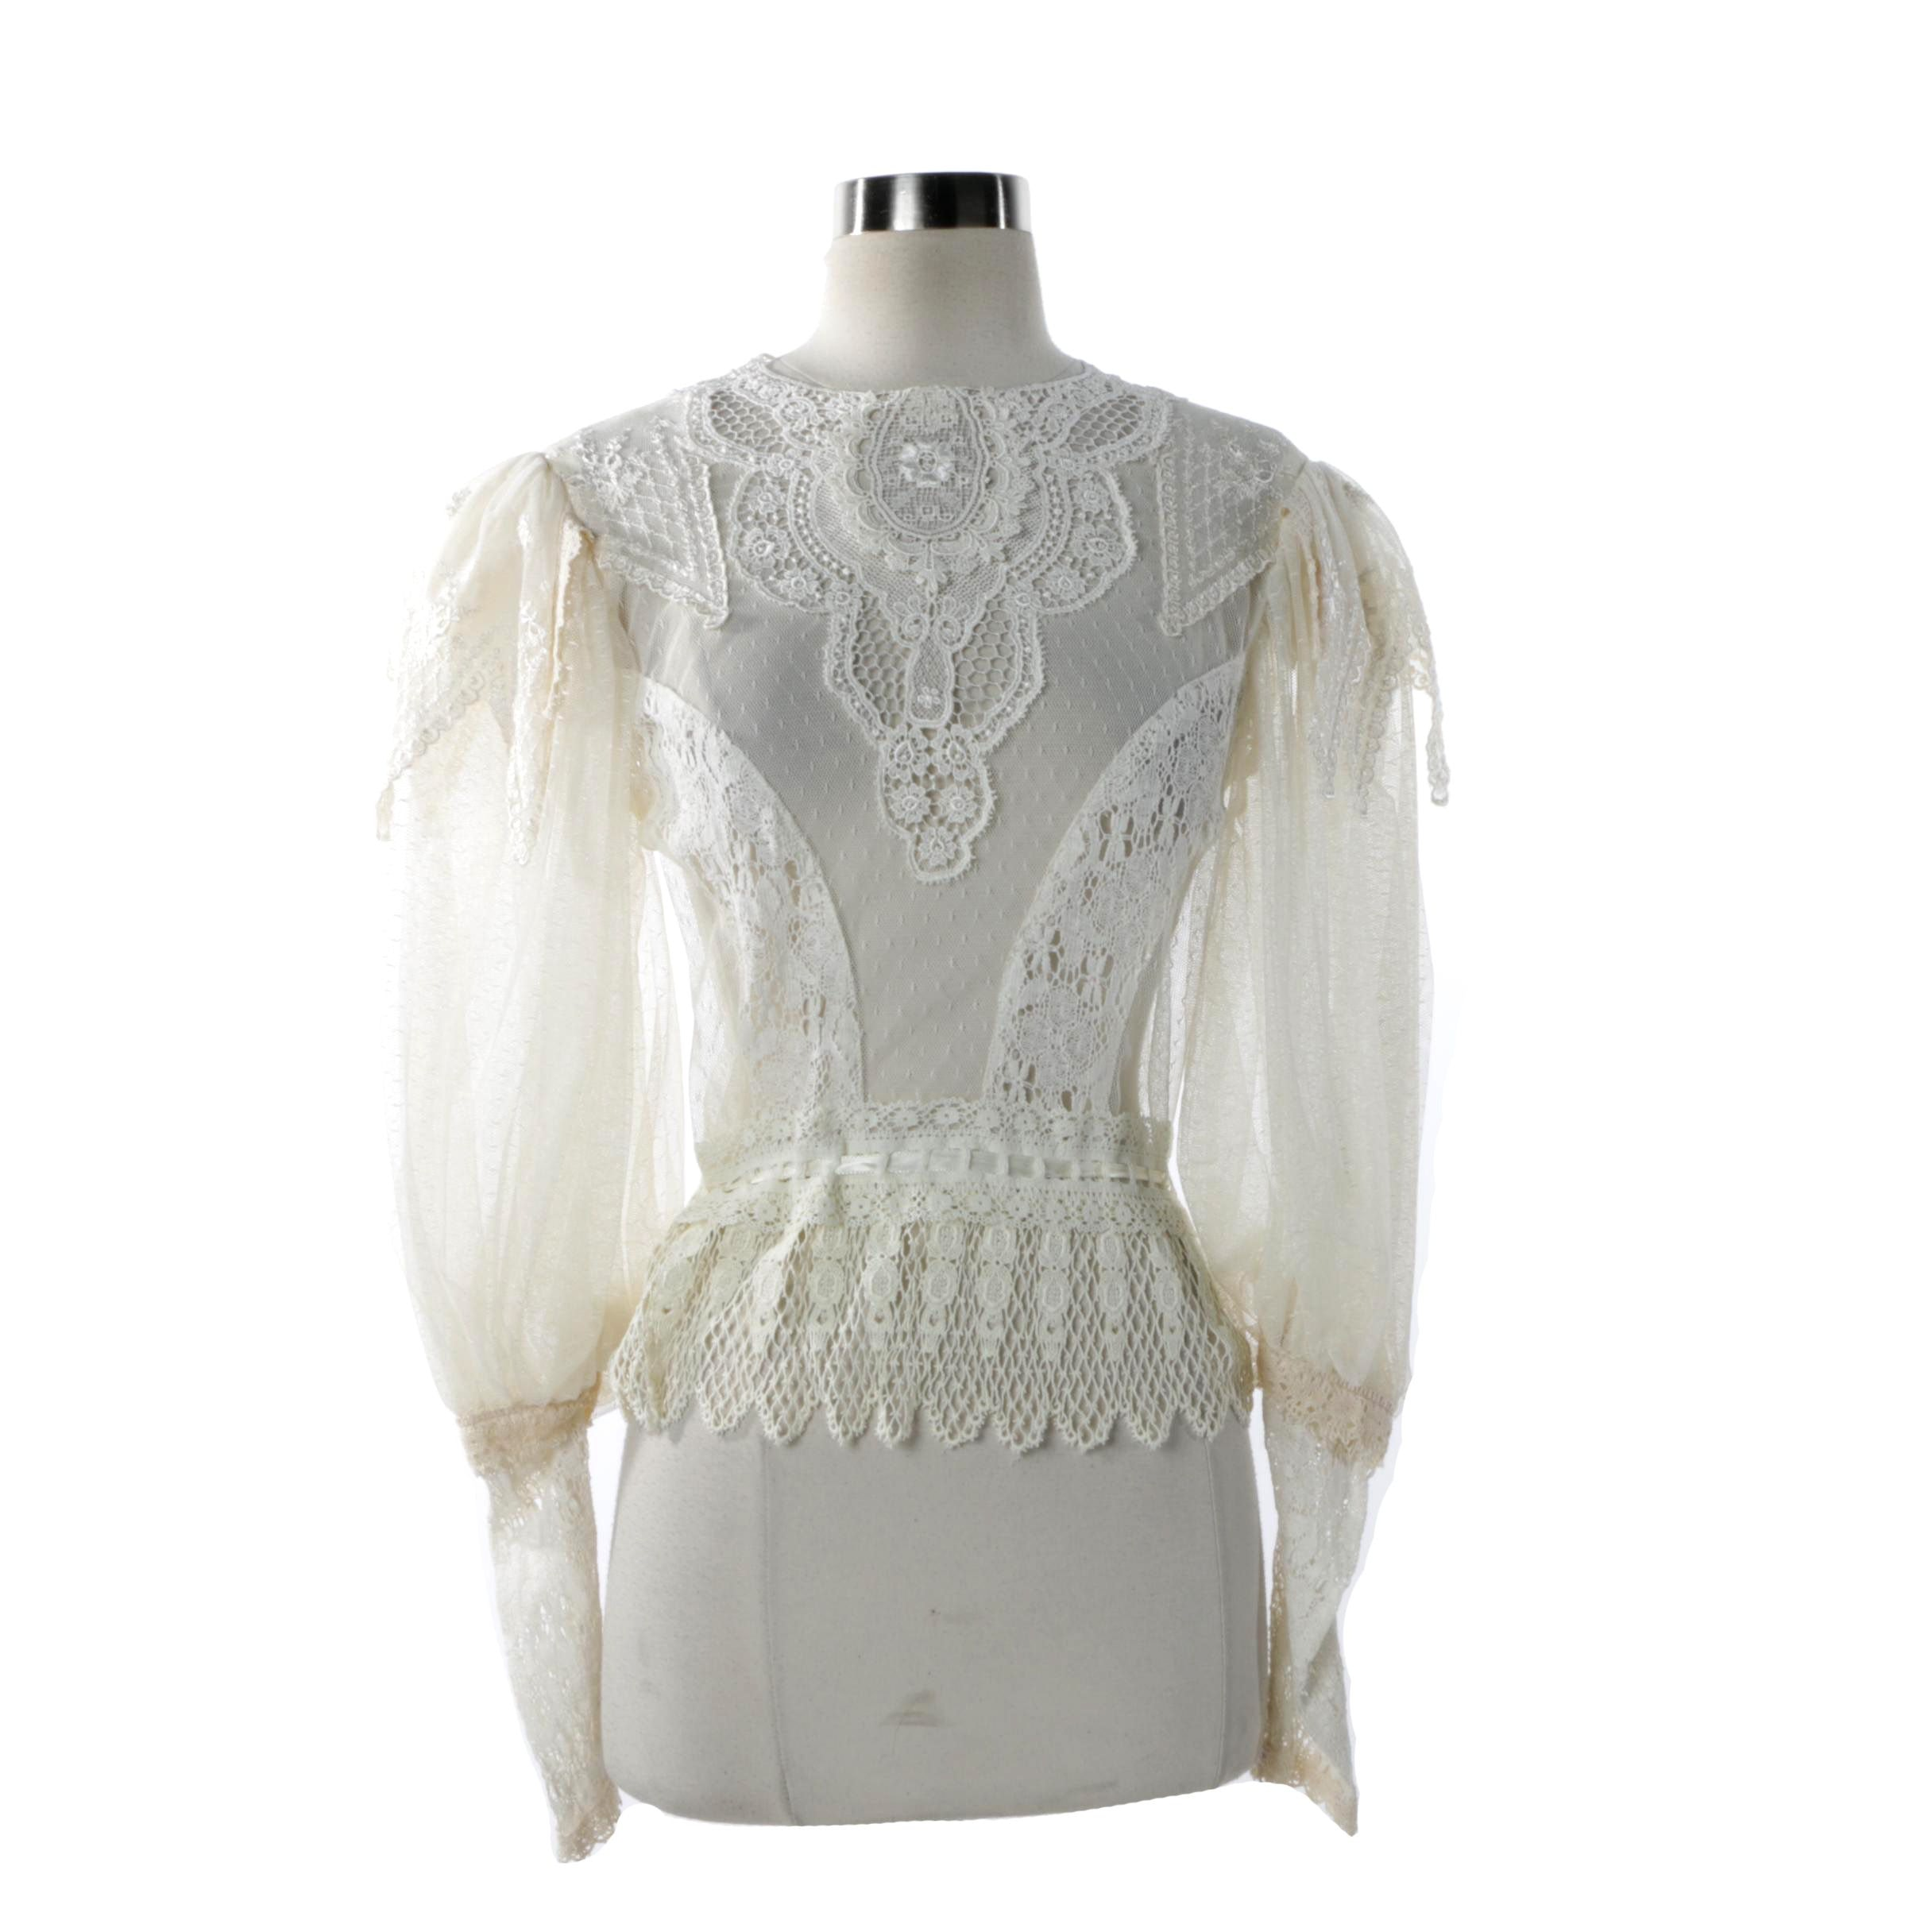 Women's Vintage Lace Edwardian Inspired Blouse